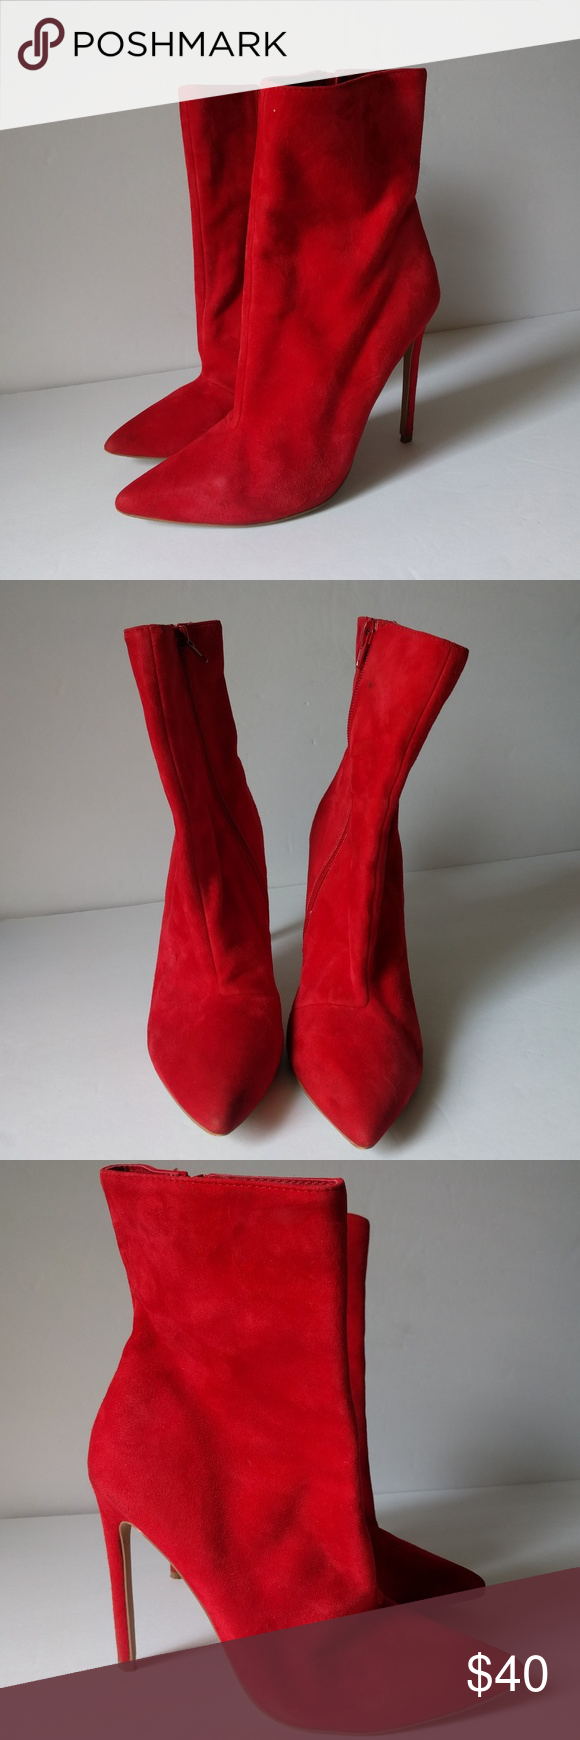 2ef659694a6 Steve Madden 8 Red Wagner Leather Stiletto Booties Steve Madden ...